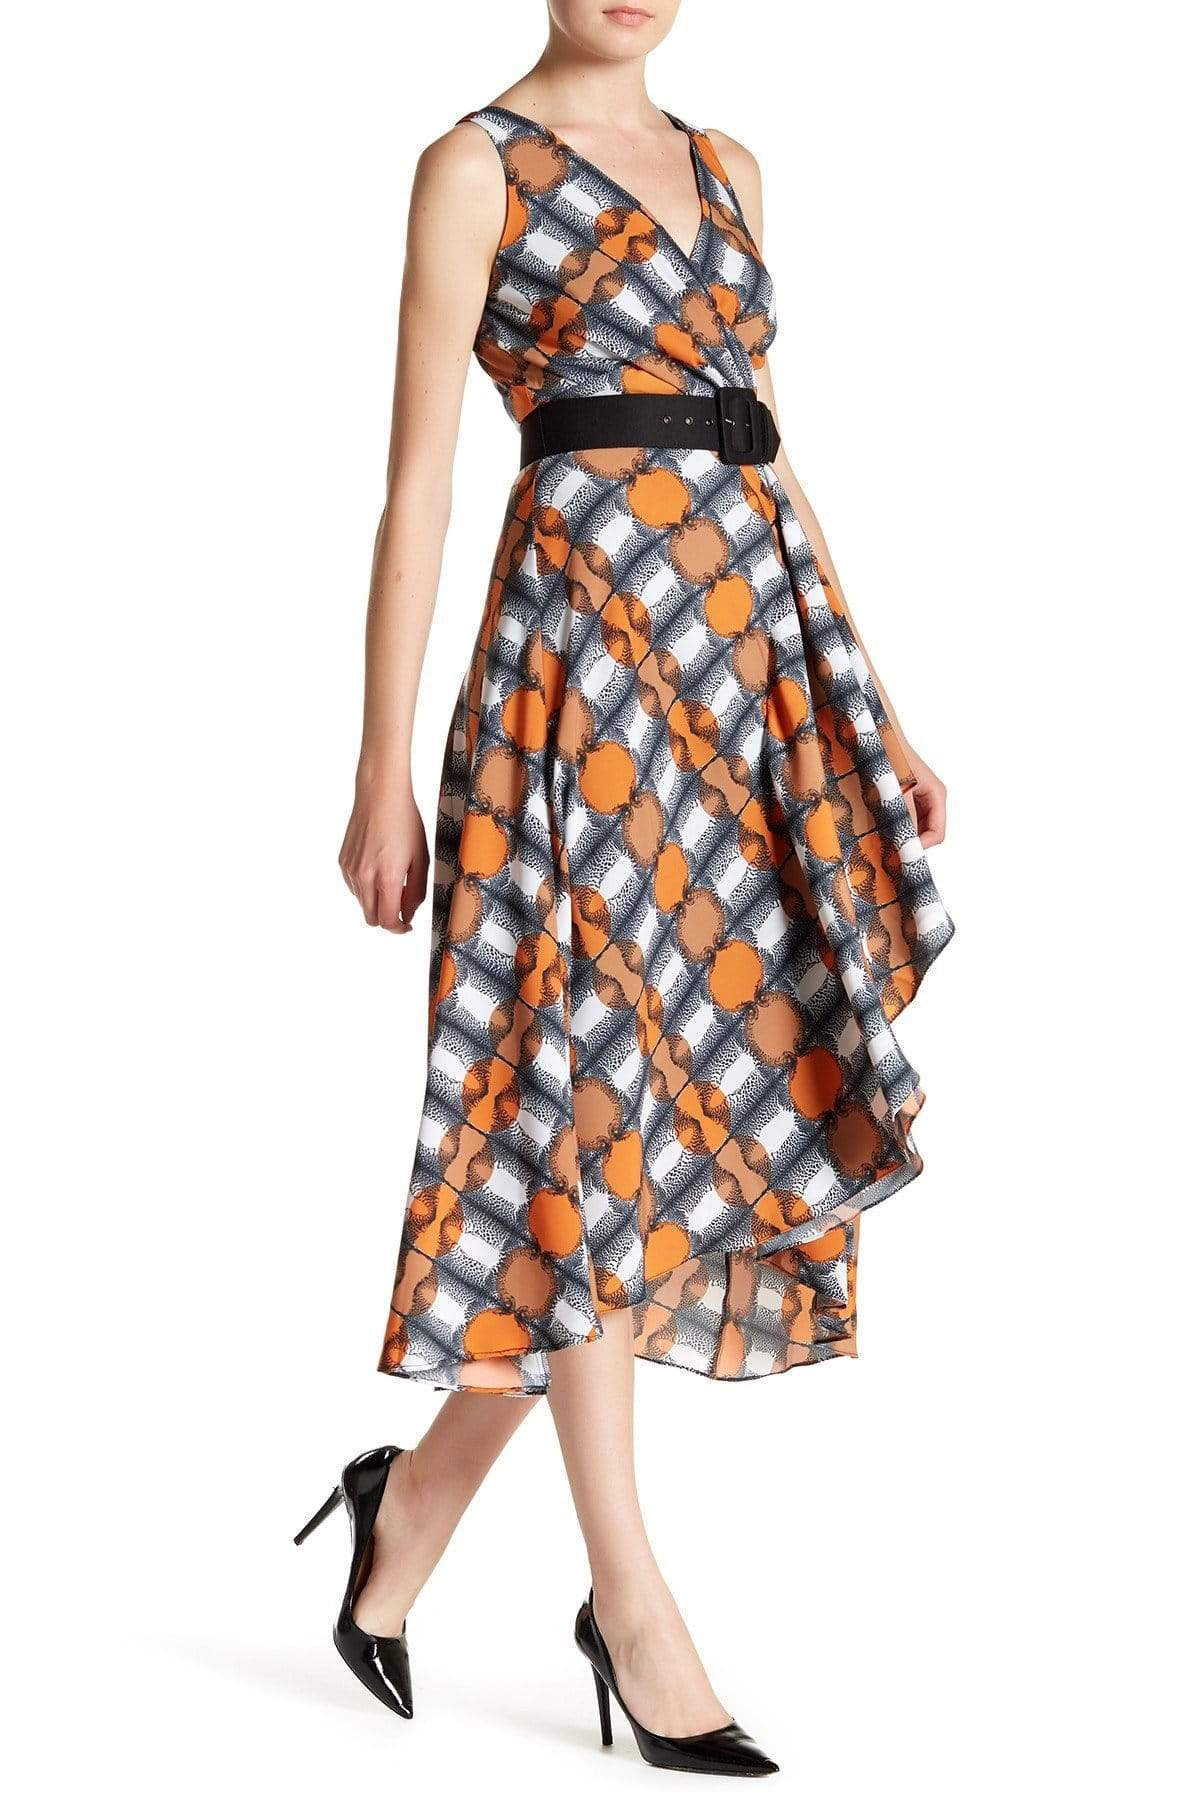 Eva Franco Dress Camille Dress - Orange/Navy